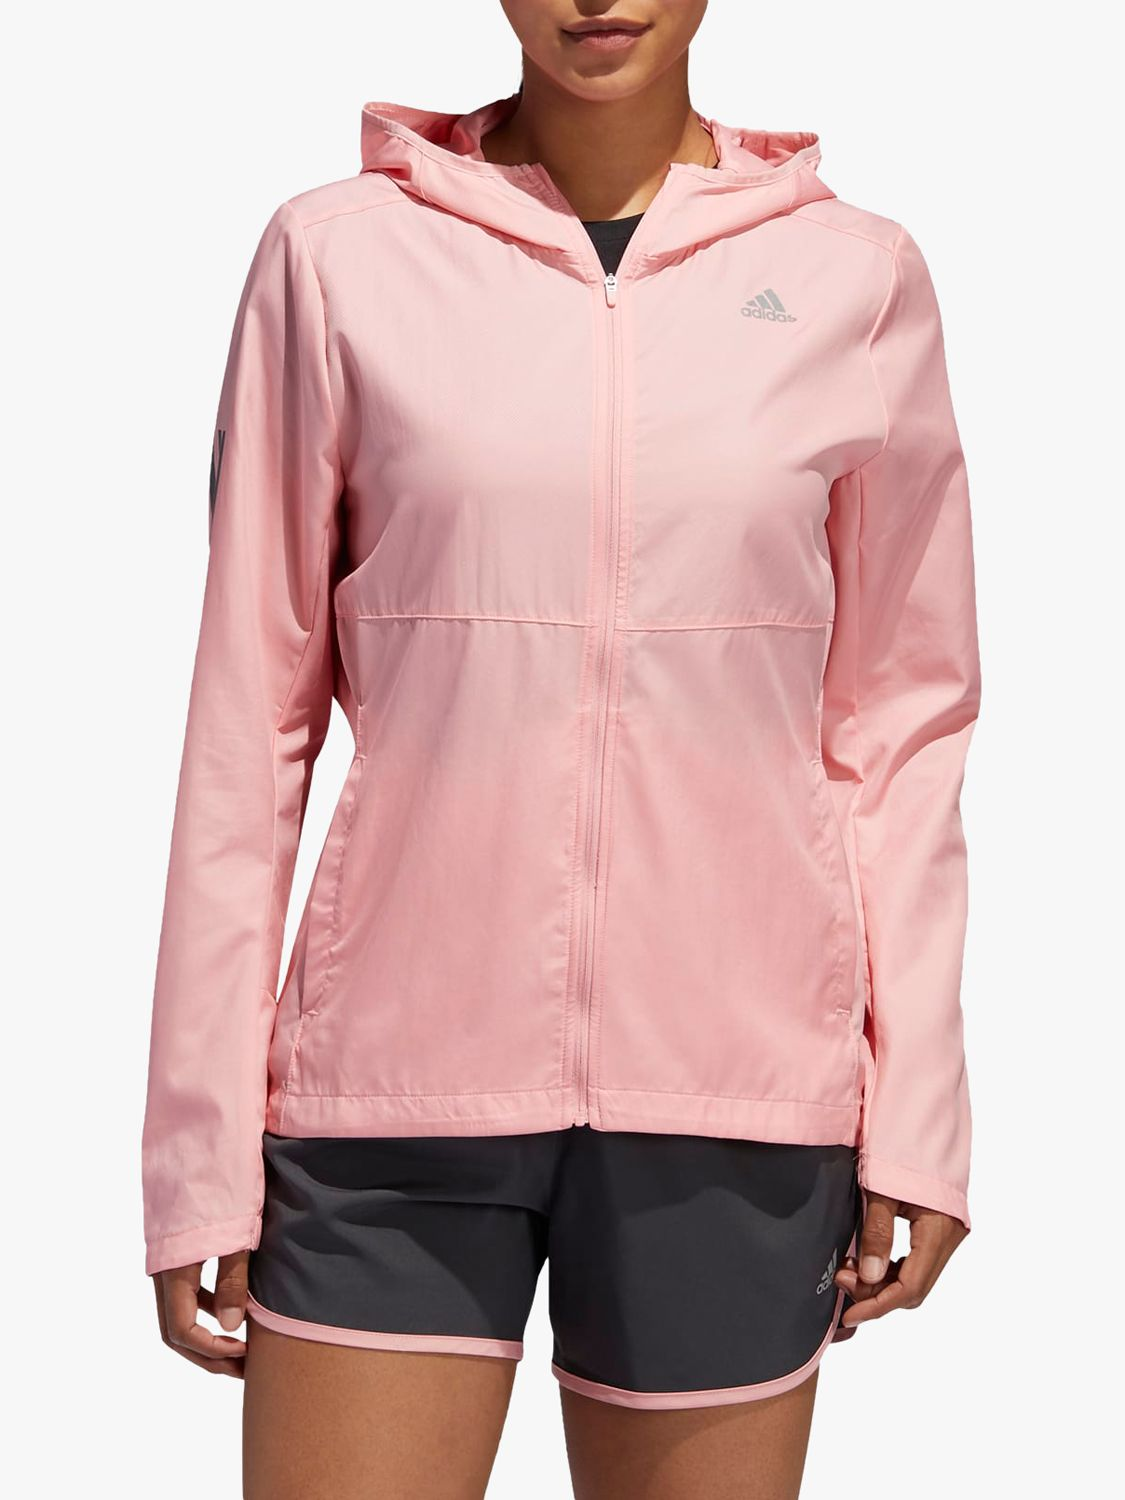 Adidas adidas Own The Run Hooded Wind Women's Running Jacket